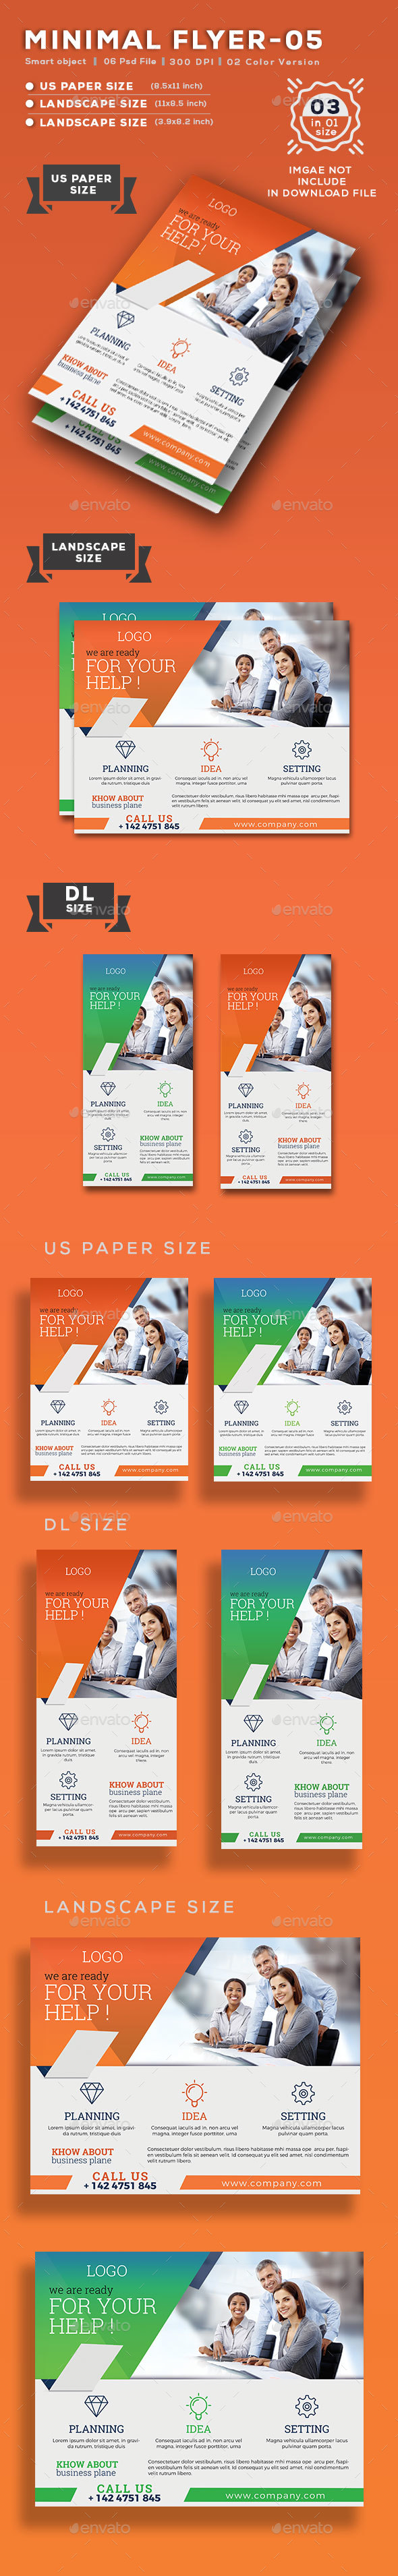 Minimal Flyer-05 - Flyers Print Templates